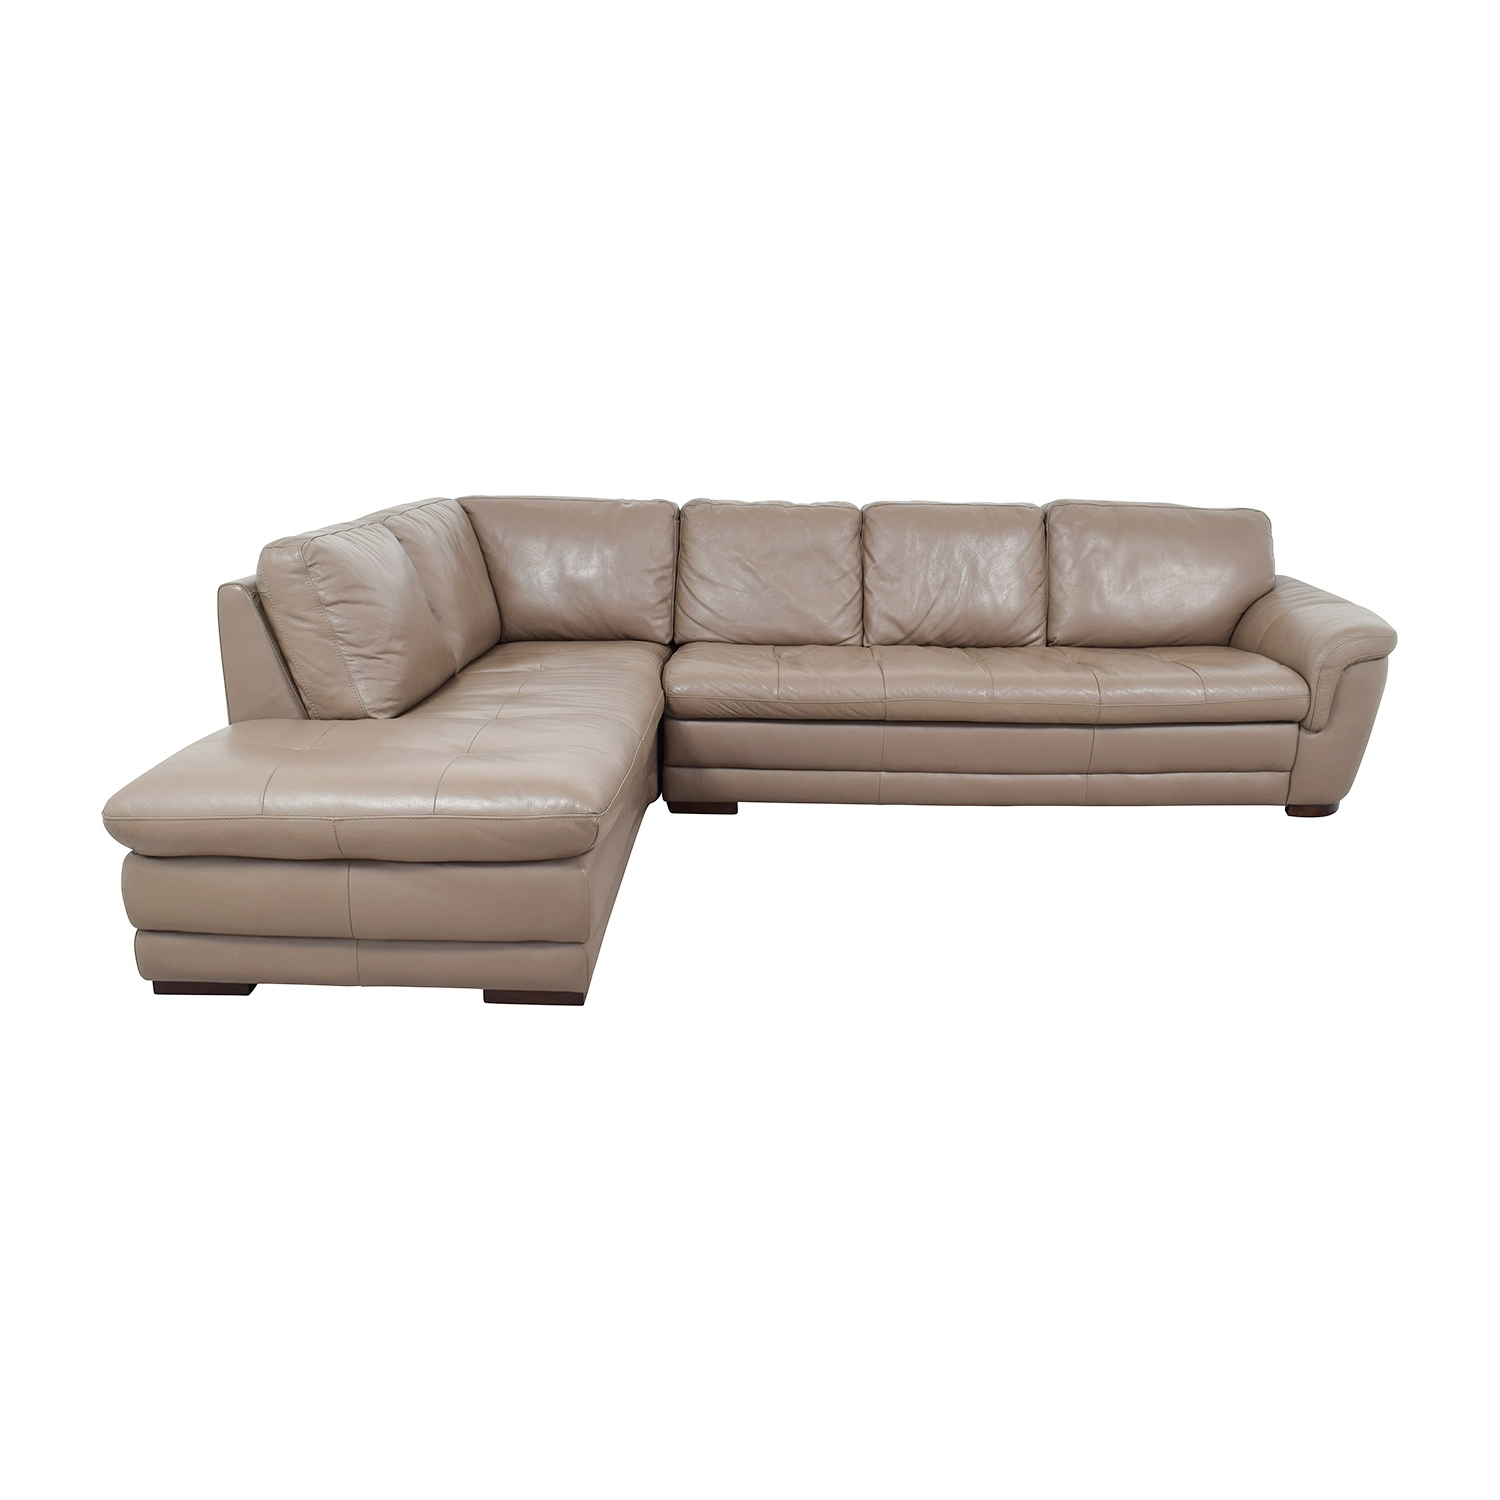 [%74% Off – Raymour And Flanigan Raymour & Flanigan Tan Tufted Pertaining To Most Current Raymour And Flanigan Sectional Sofas|raymour And Flanigan Sectional Sofas Inside Well Known 74% Off – Raymour And Flanigan Raymour & Flanigan Tan Tufted|best And Newest Raymour And Flanigan Sectional Sofas Within 74% Off – Raymour And Flanigan Raymour & Flanigan Tan Tufted|recent 74% Off – Raymour And Flanigan Raymour & Flanigan Tan Tufted With Regard To Raymour And Flanigan Sectional Sofas%] (View 10 of 20)